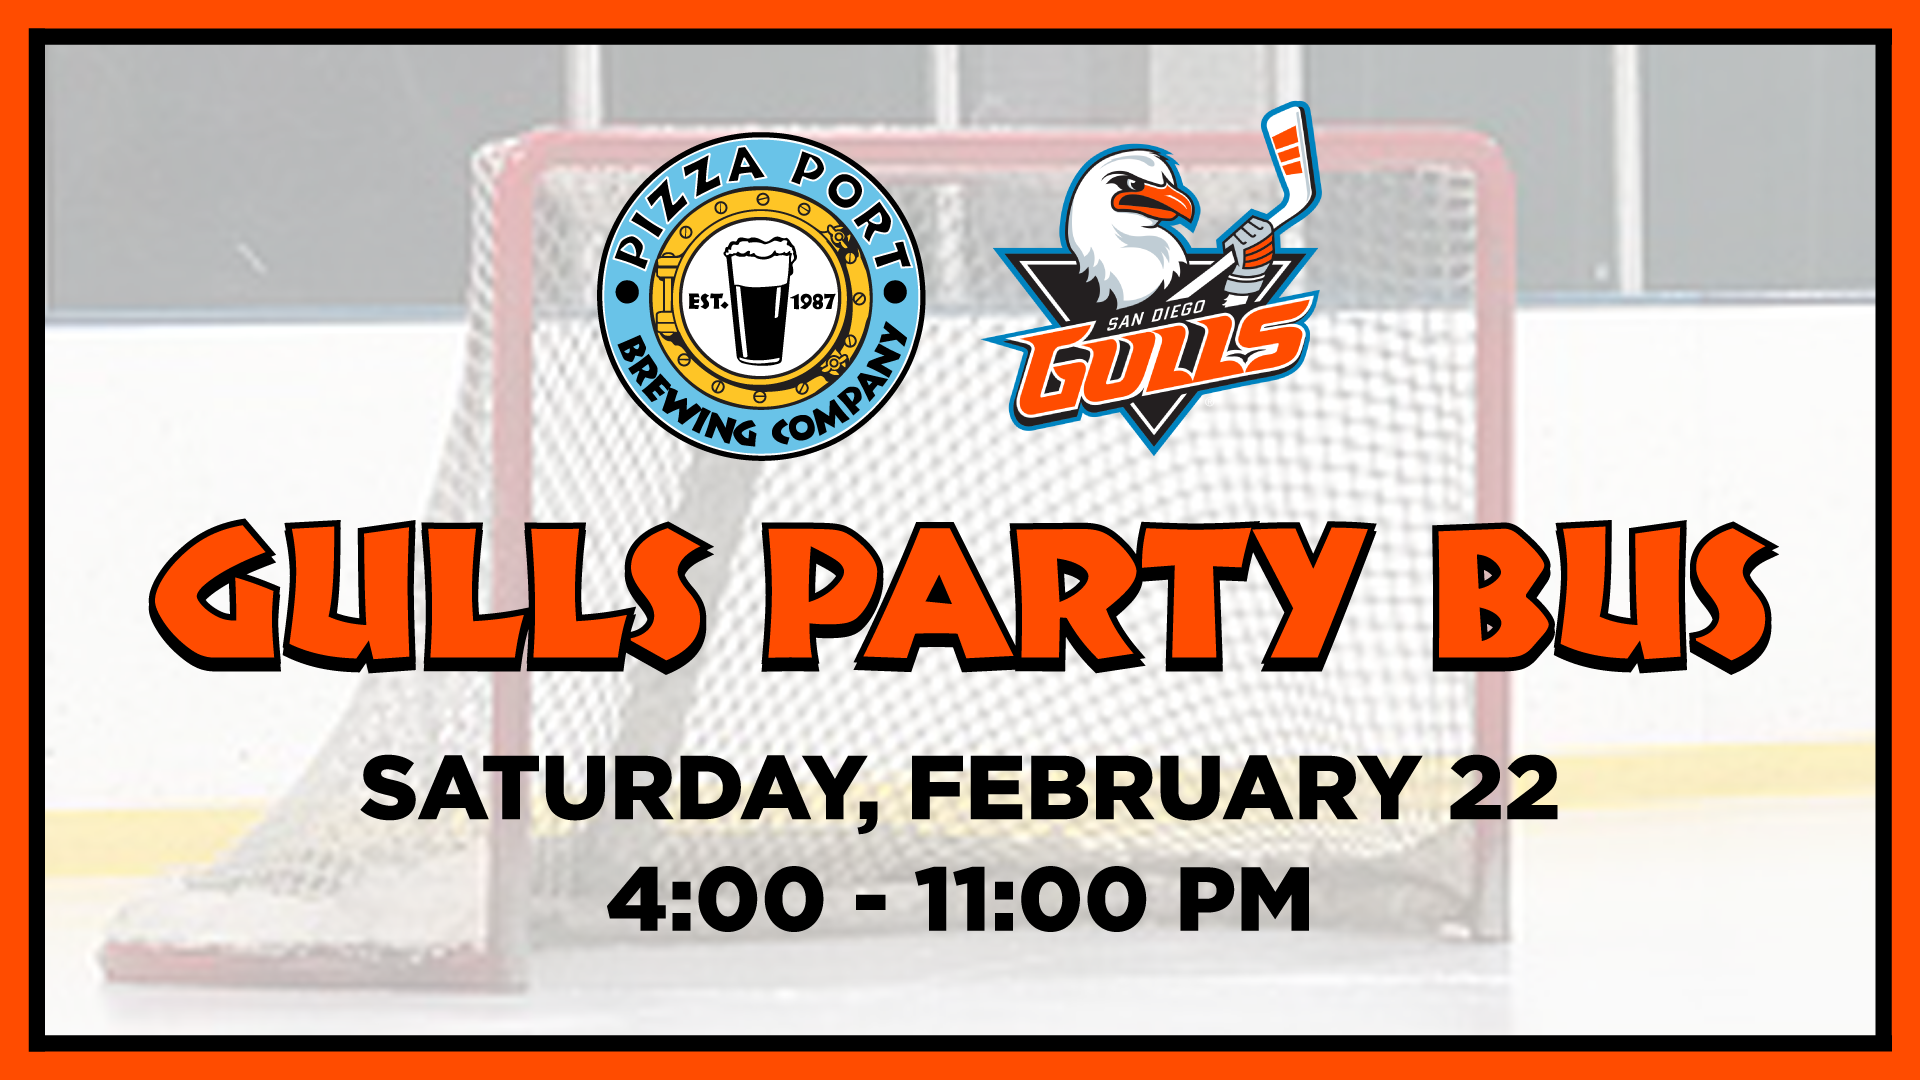 Pizza Port's San Diego Gulls Party Bus